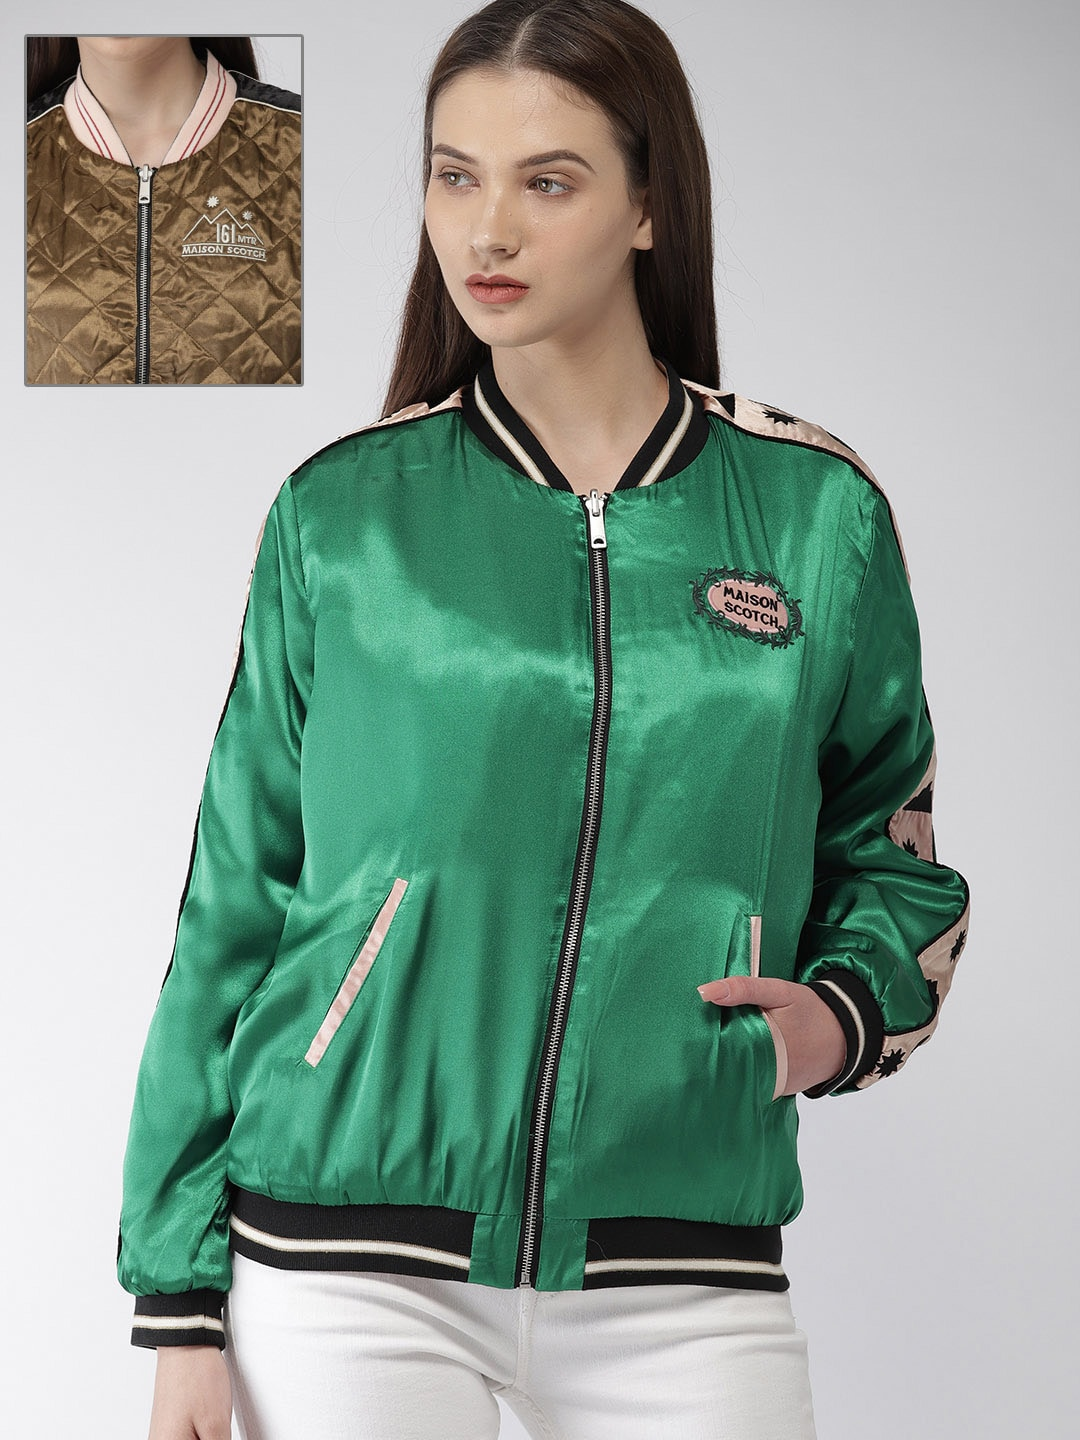 6c54fe1d47f0 Jackets - Buy Leather Jackets